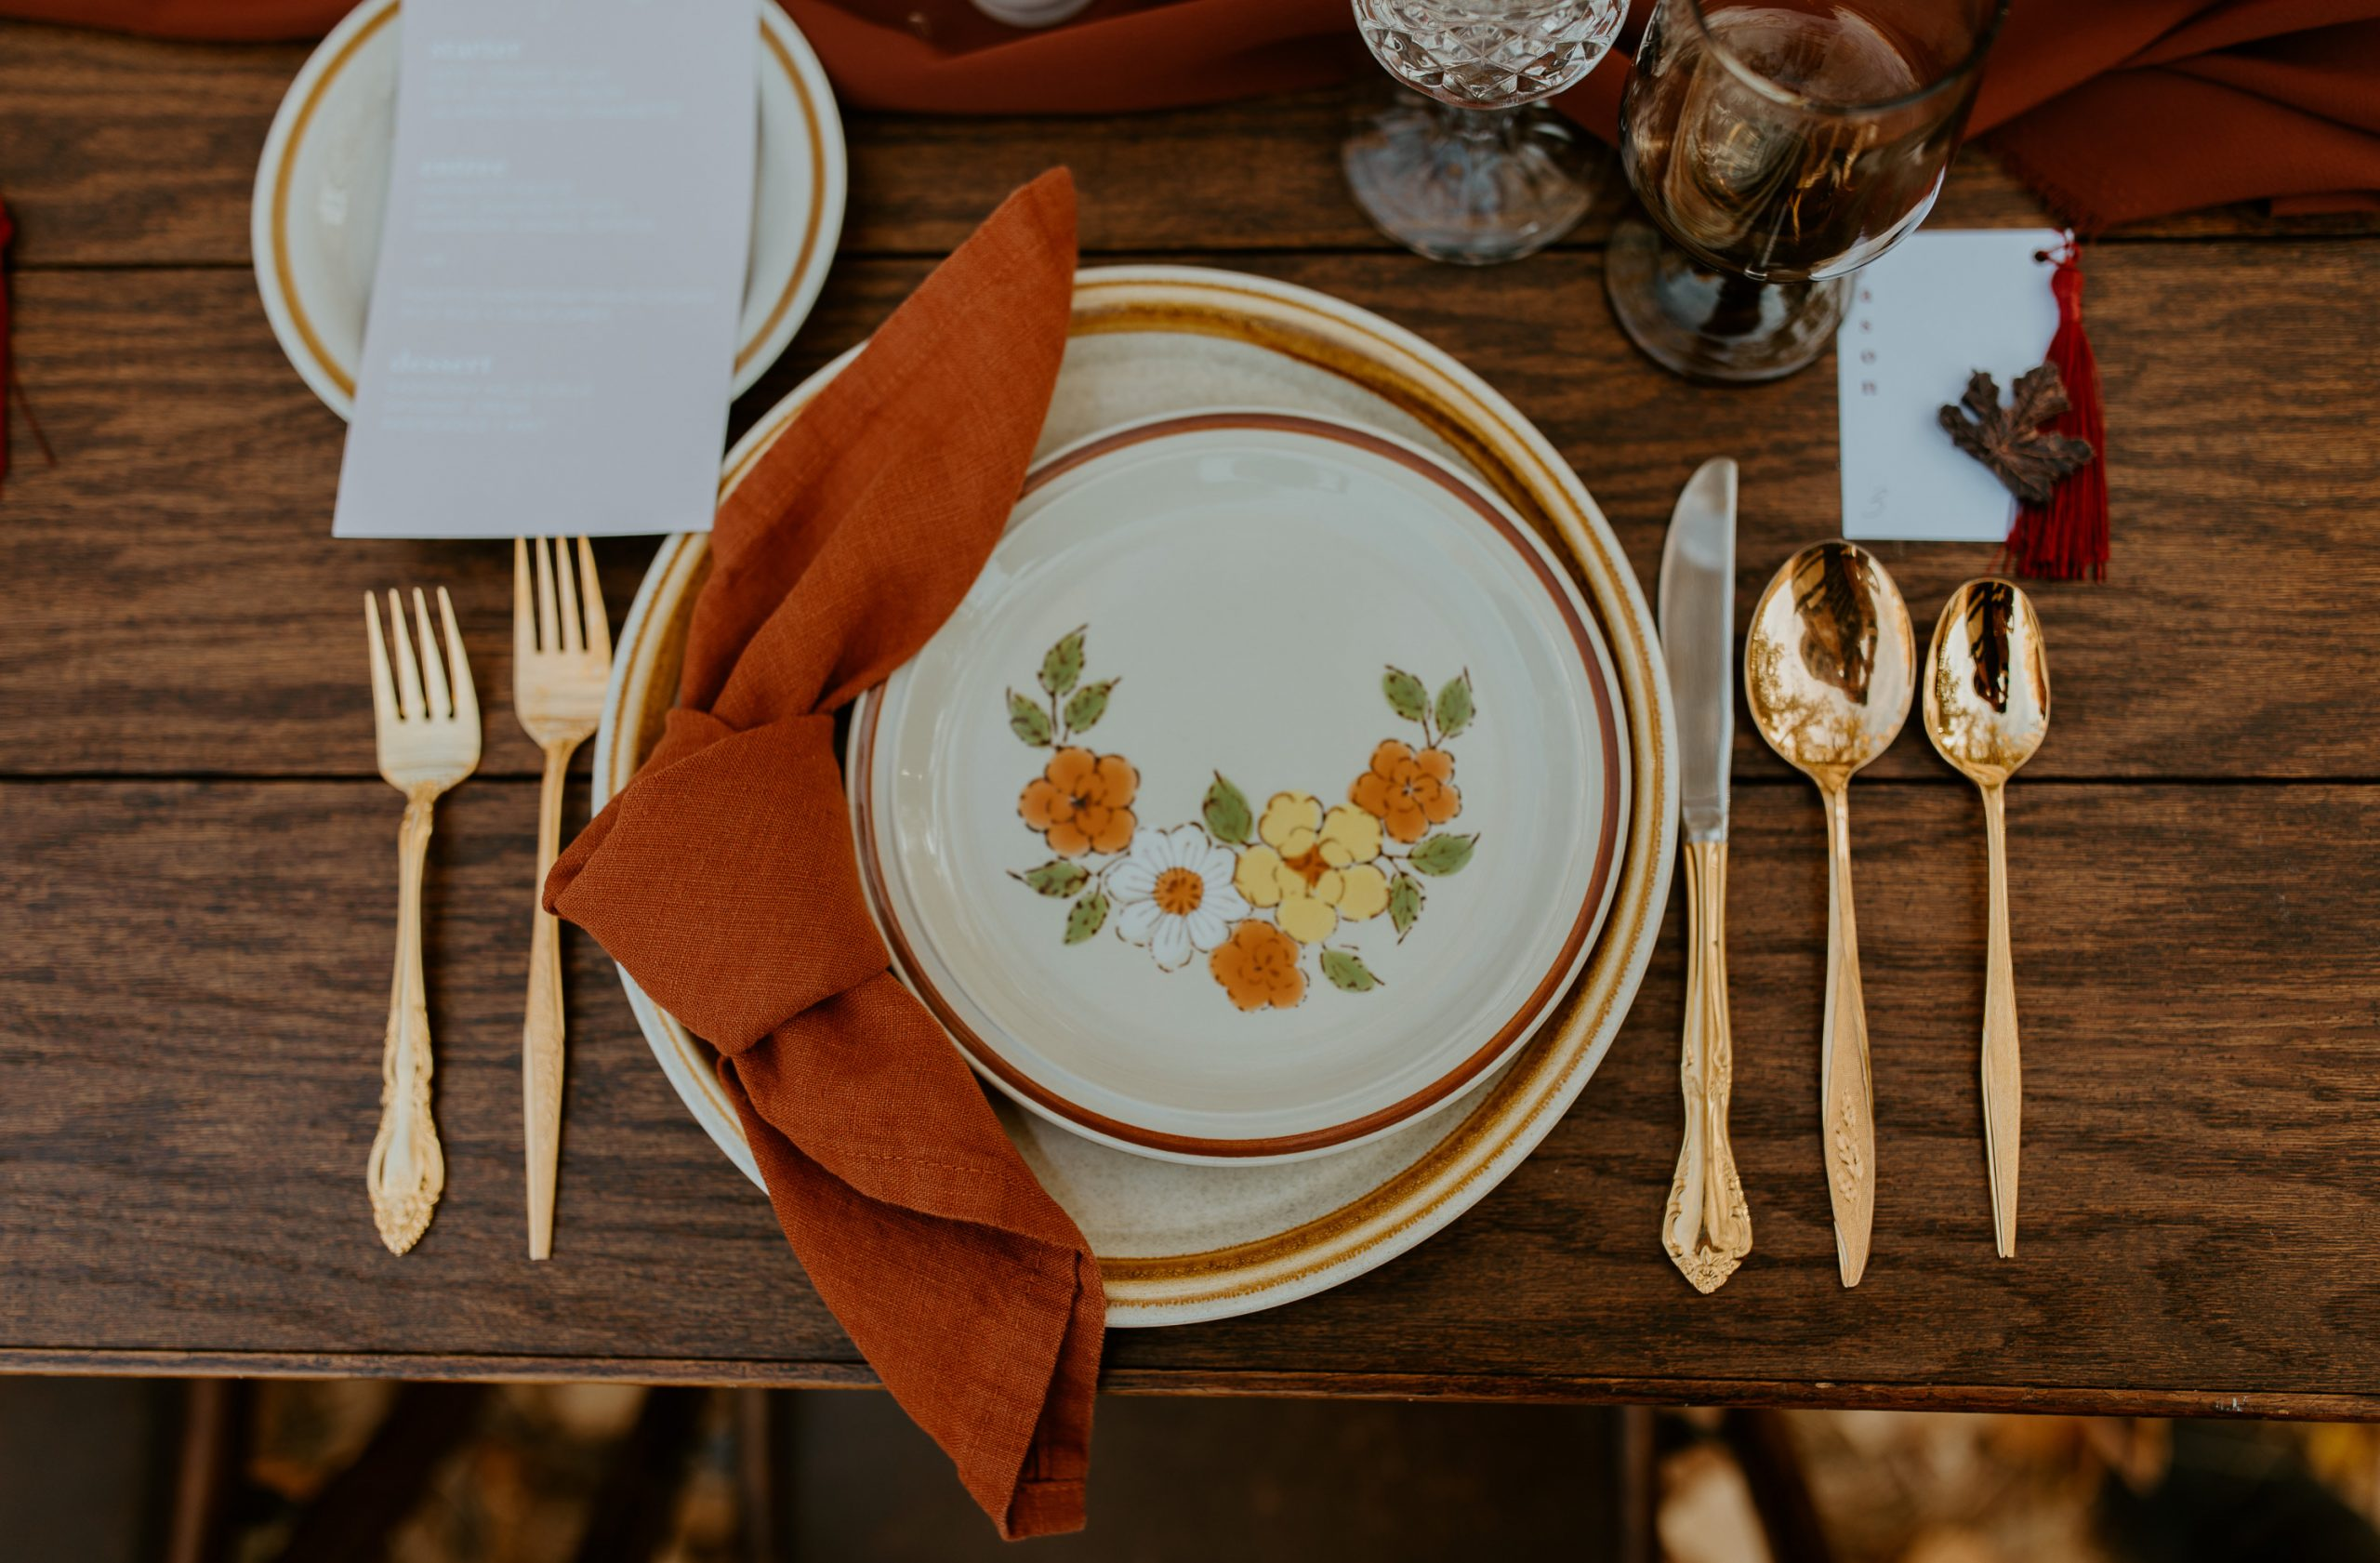 Our collection of mismatched stoneware rentals creates a vintage vibe in this muted autumn tablescape.